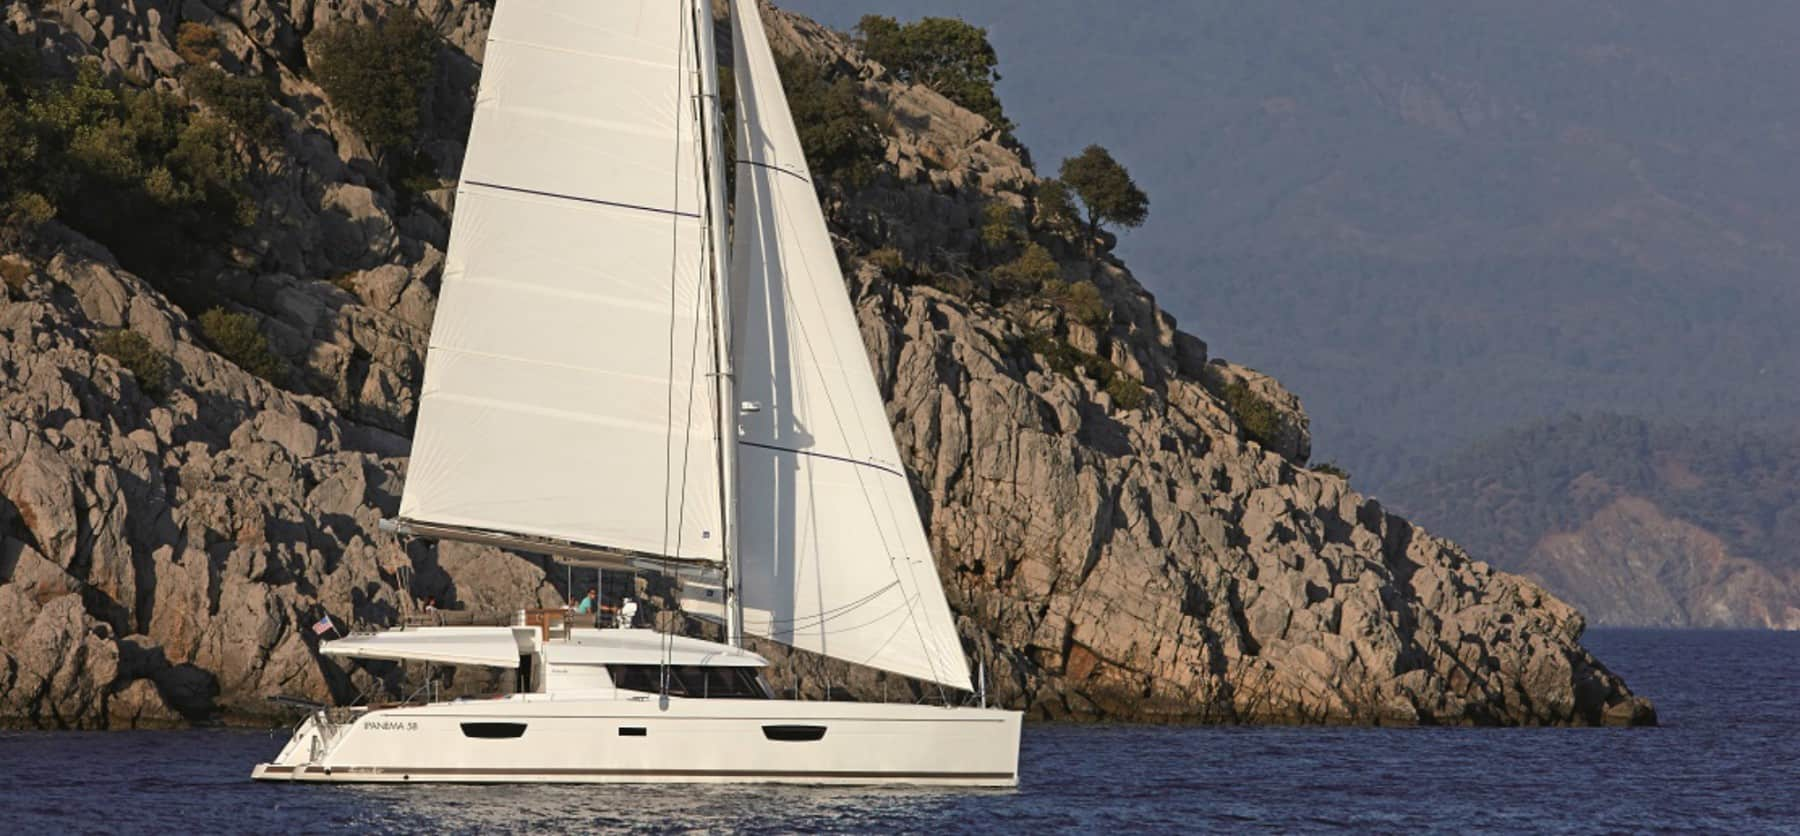 The Pajot Ipanema 58 in action, sliding through the calm waves along side beautiful coastline